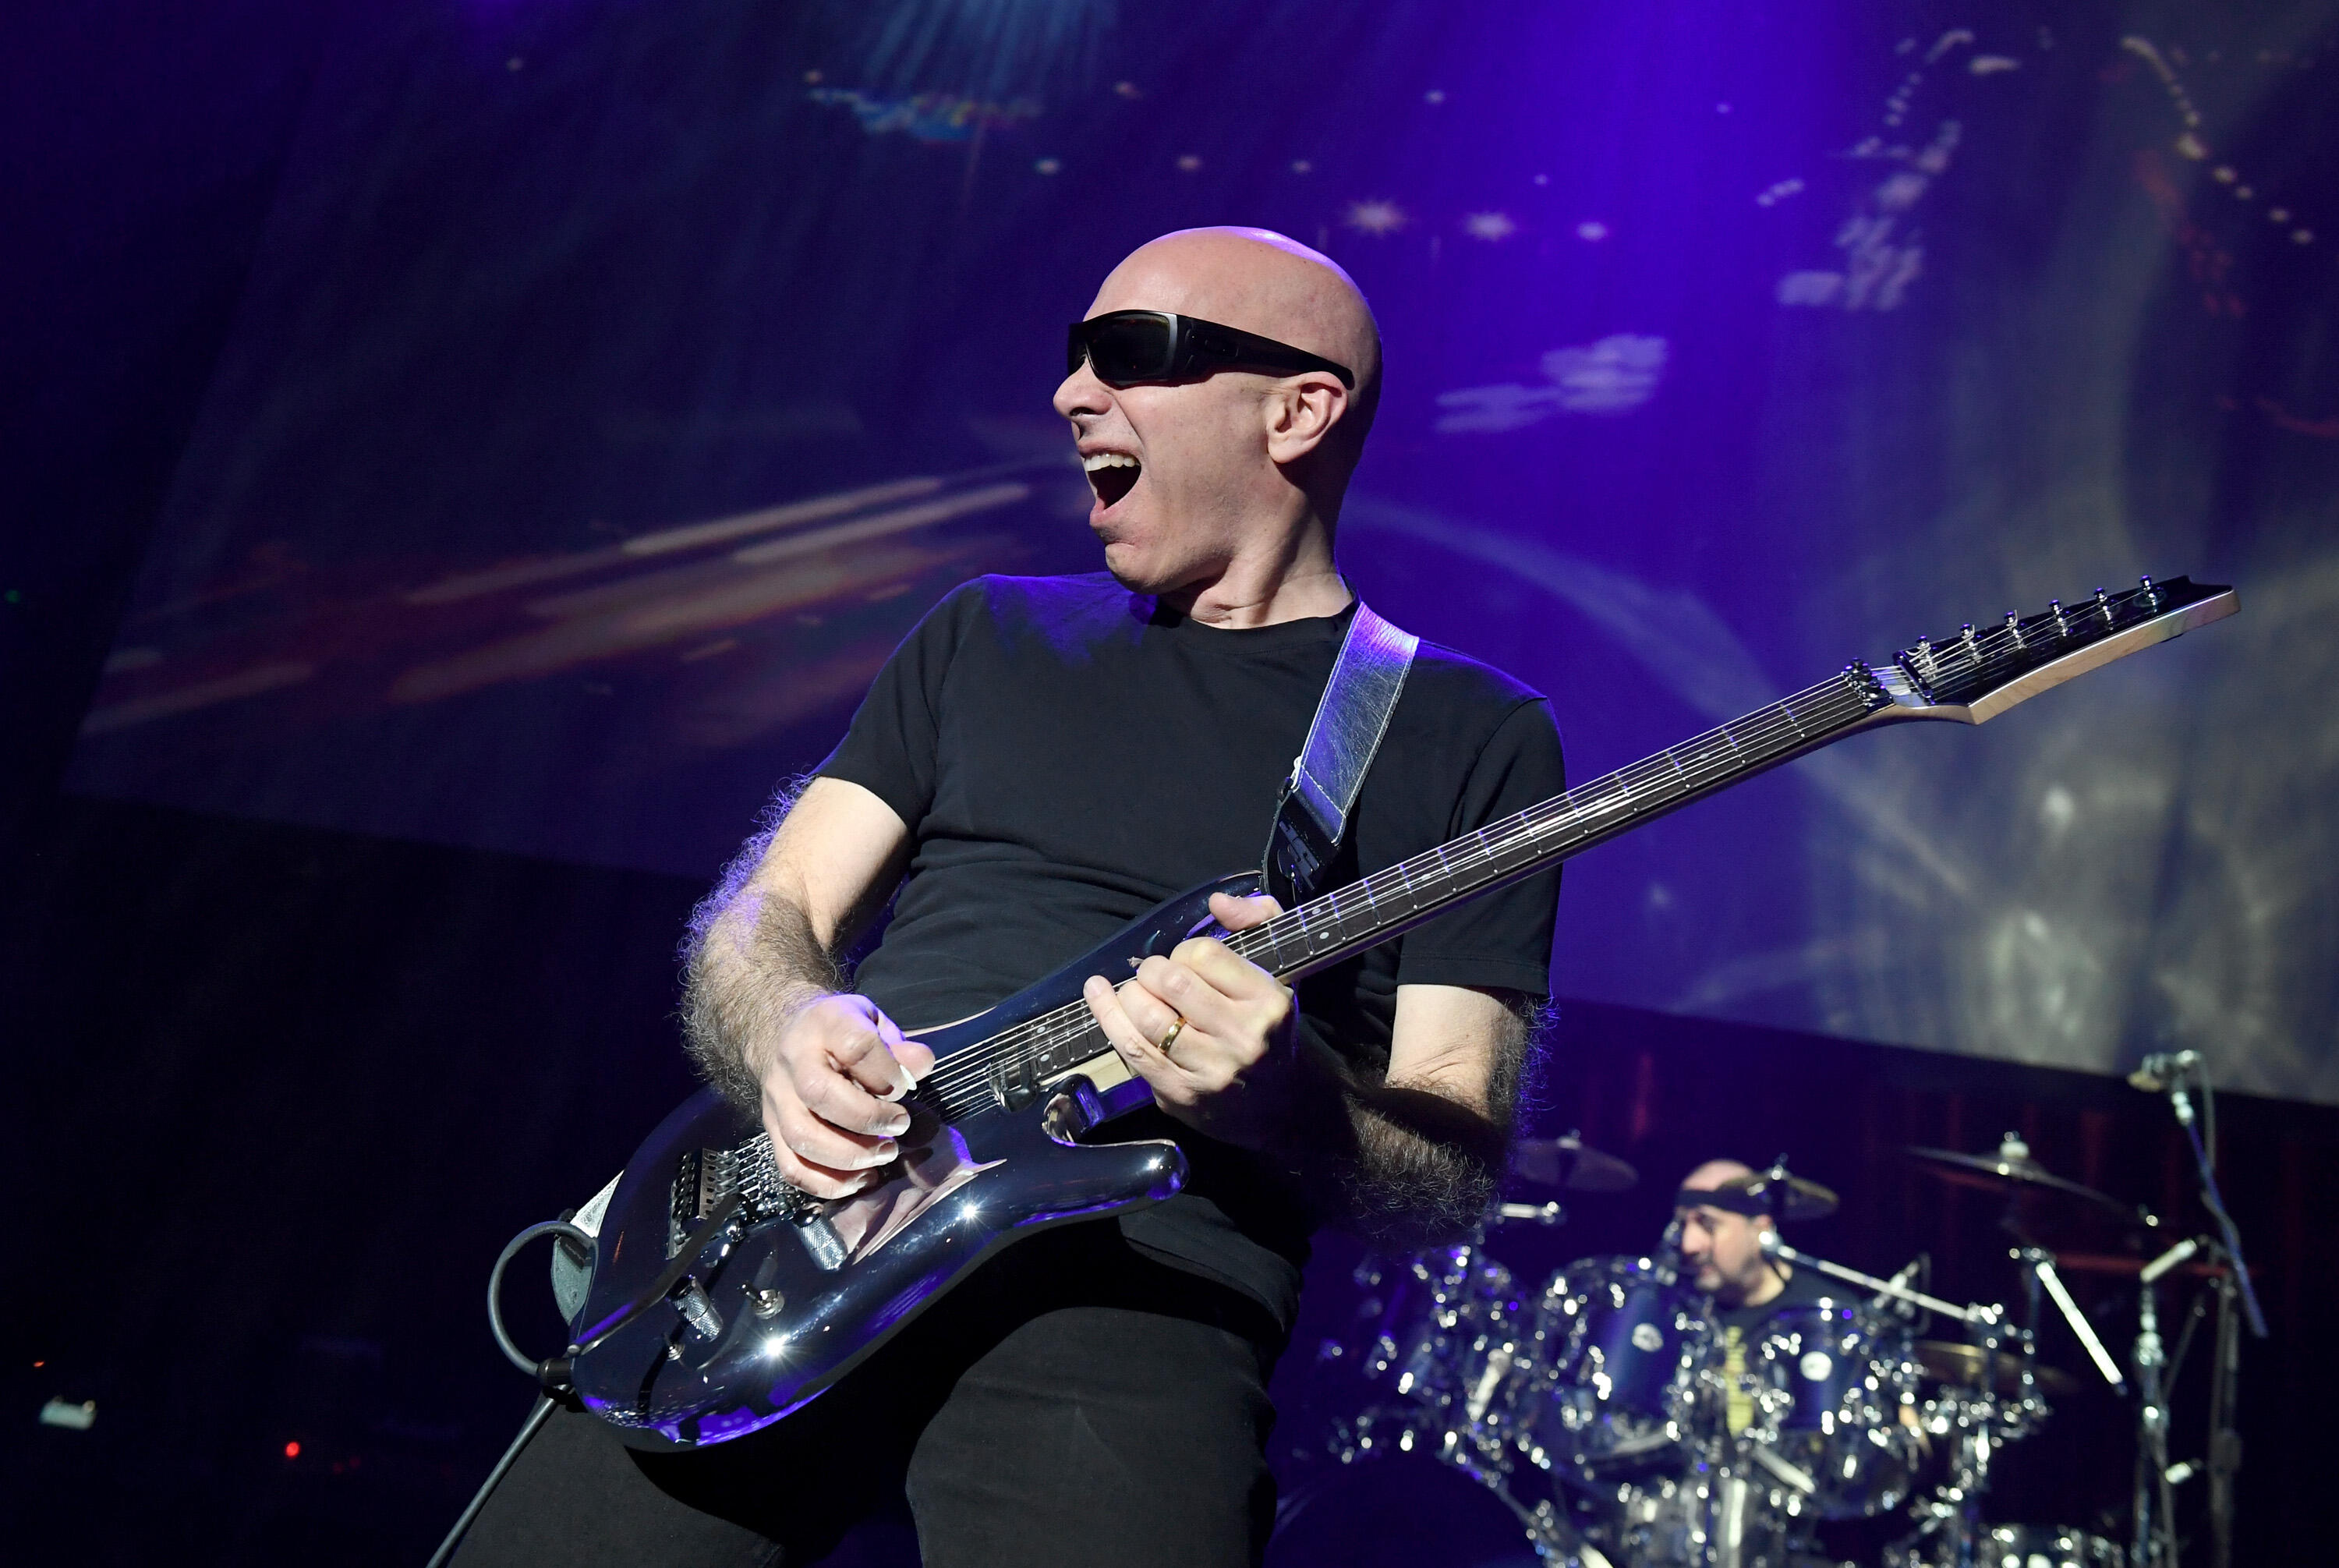 How The Ghost Of Jimi Hendrix 'Rejuvenated' Joe Satriani For His New Album